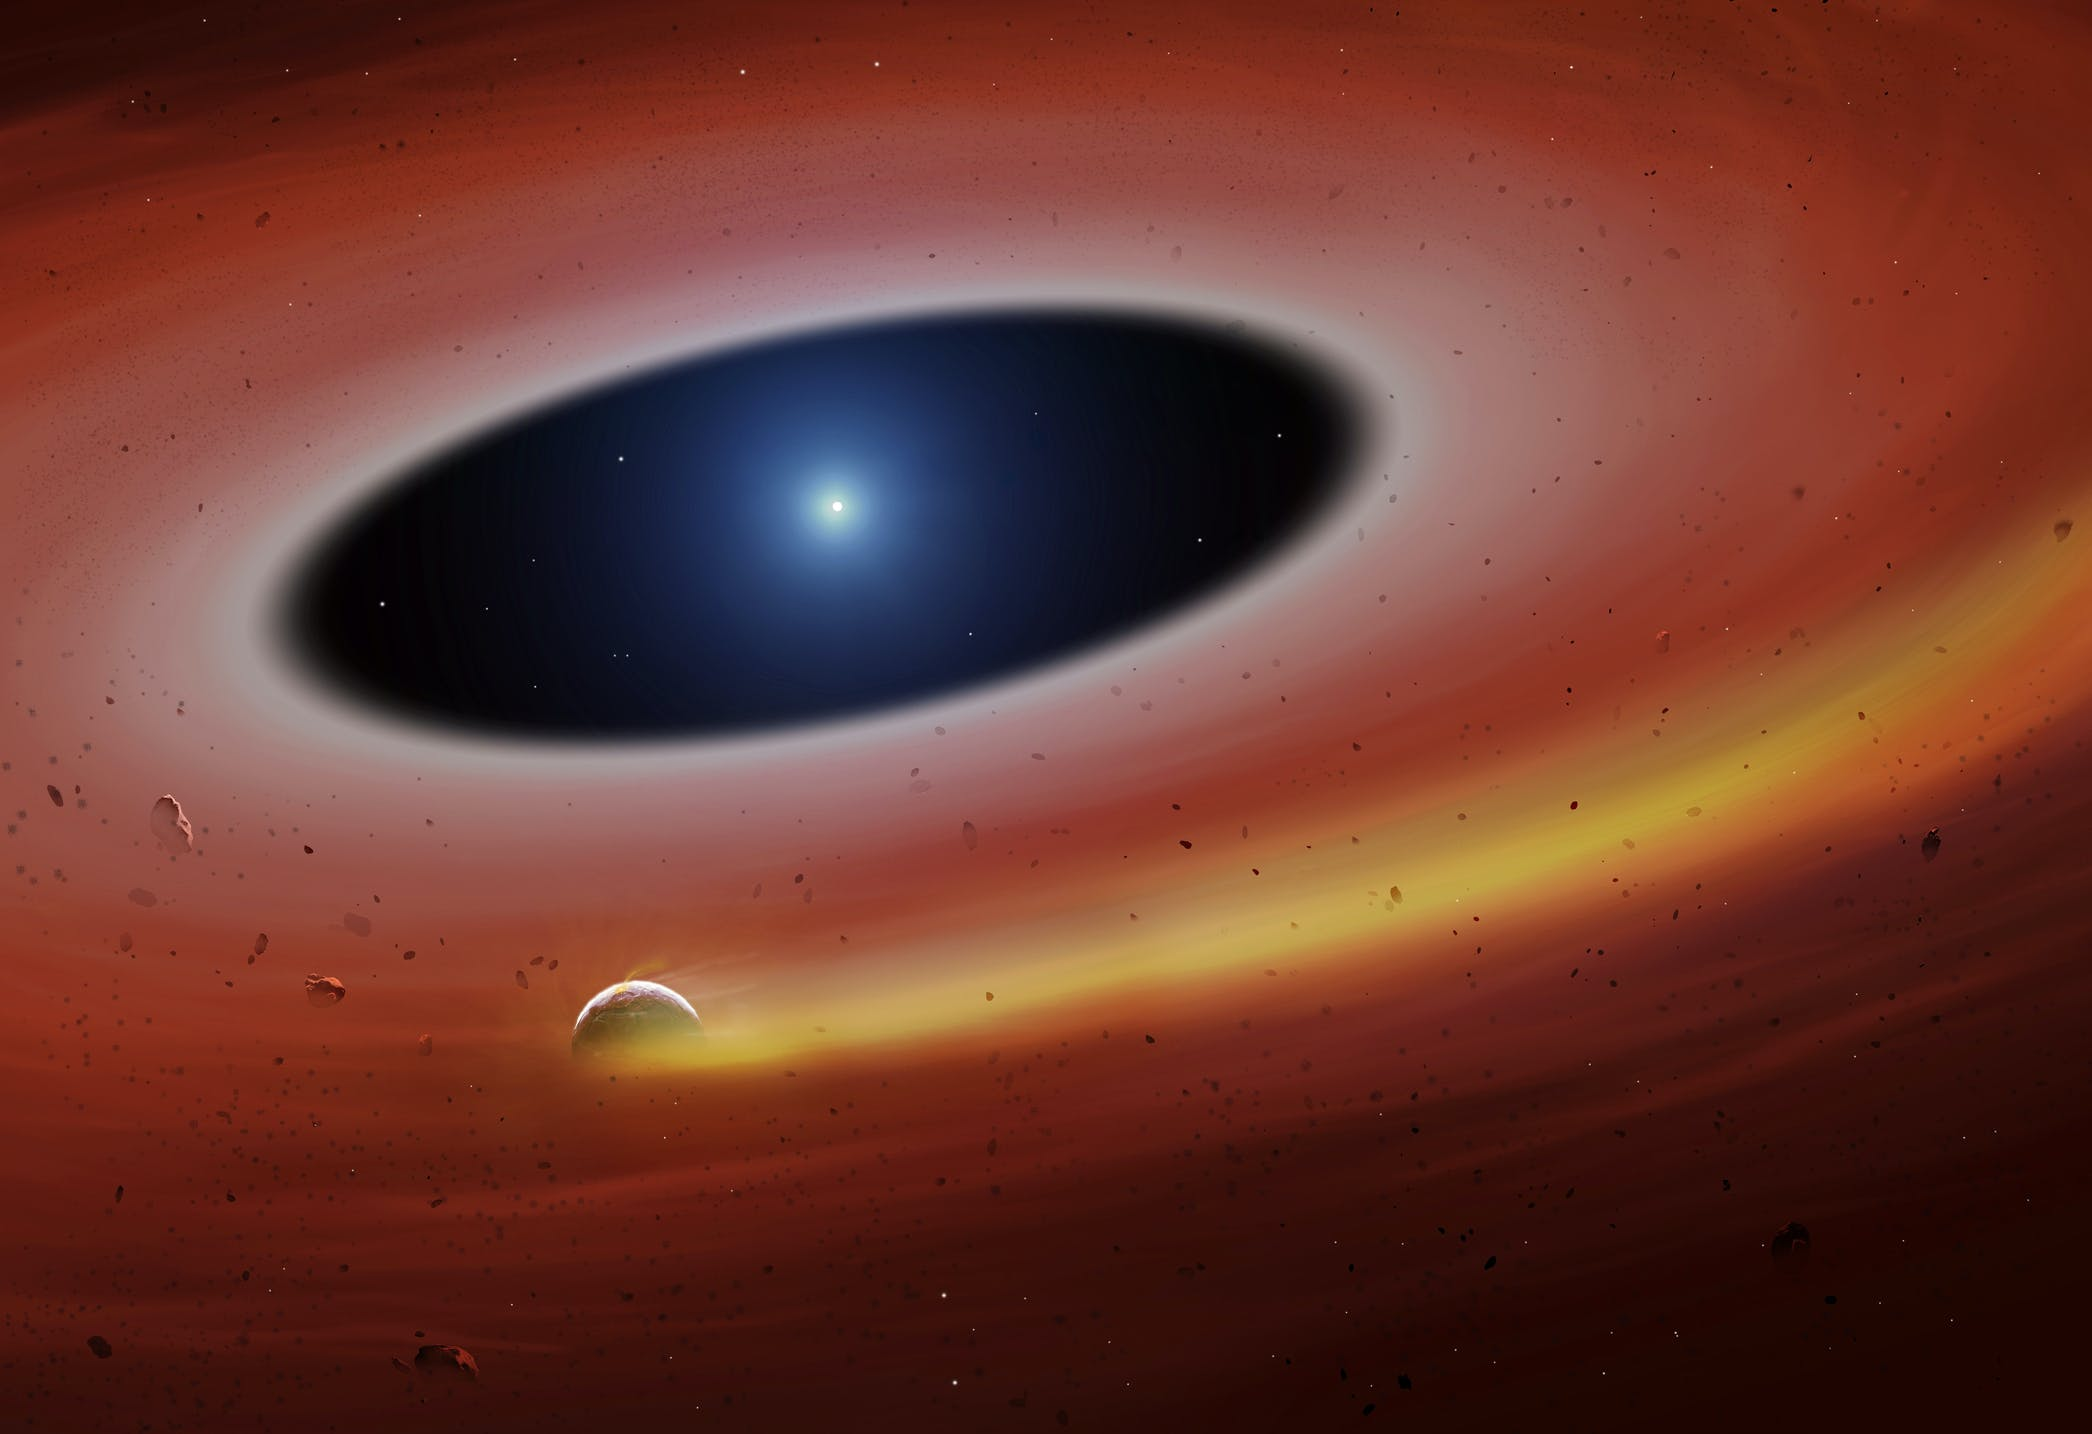 A HEAVY-METAL PLANET ORBITING A DEAD STAR CAN PREDICT THE END OF OUR WORLD